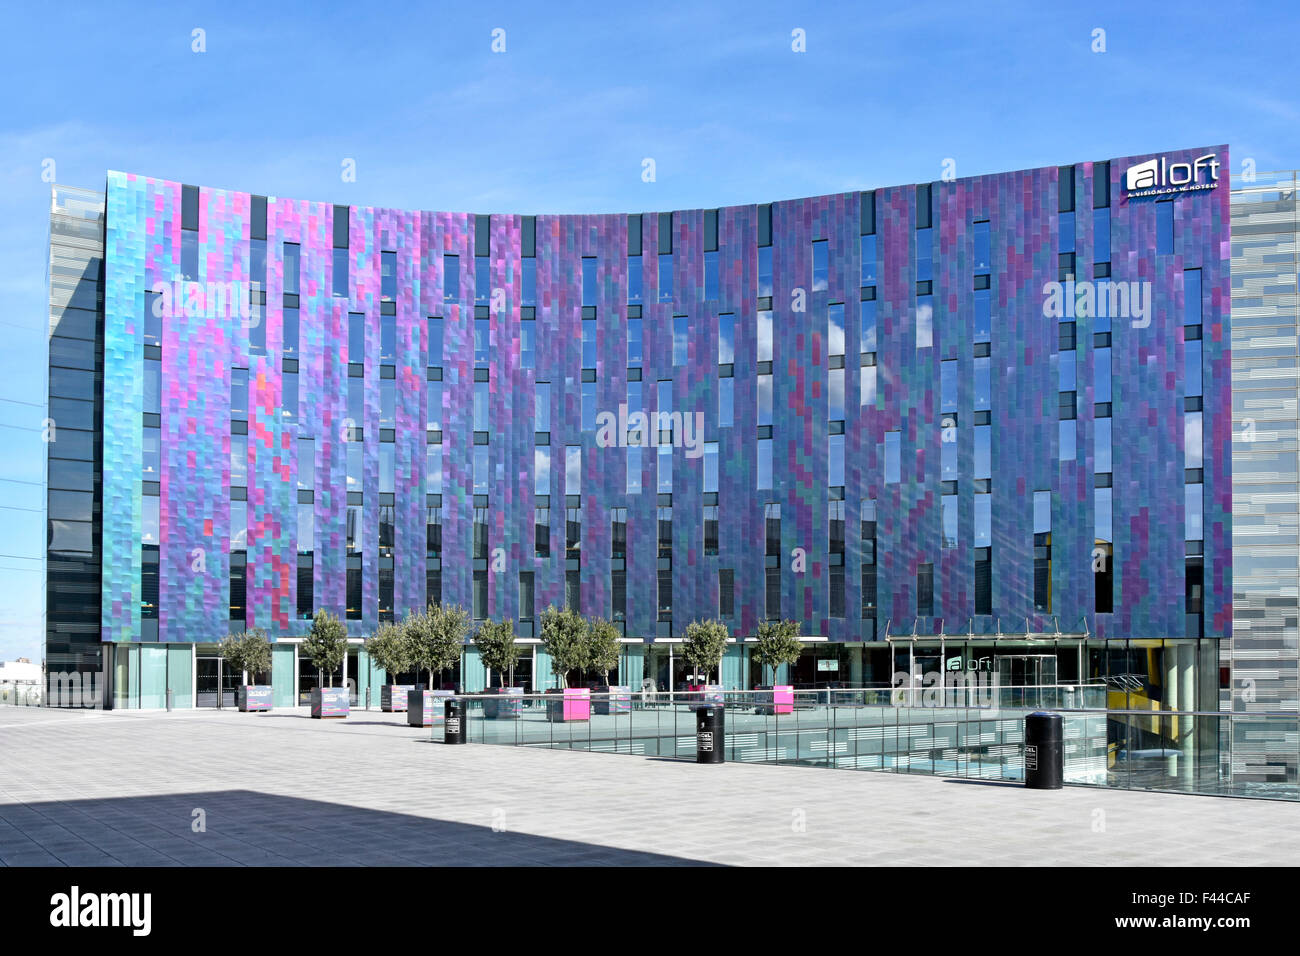 Hotel modern architecture colourful cladding panels on façade of aloft W hotel building adjacent to London - Stock Image